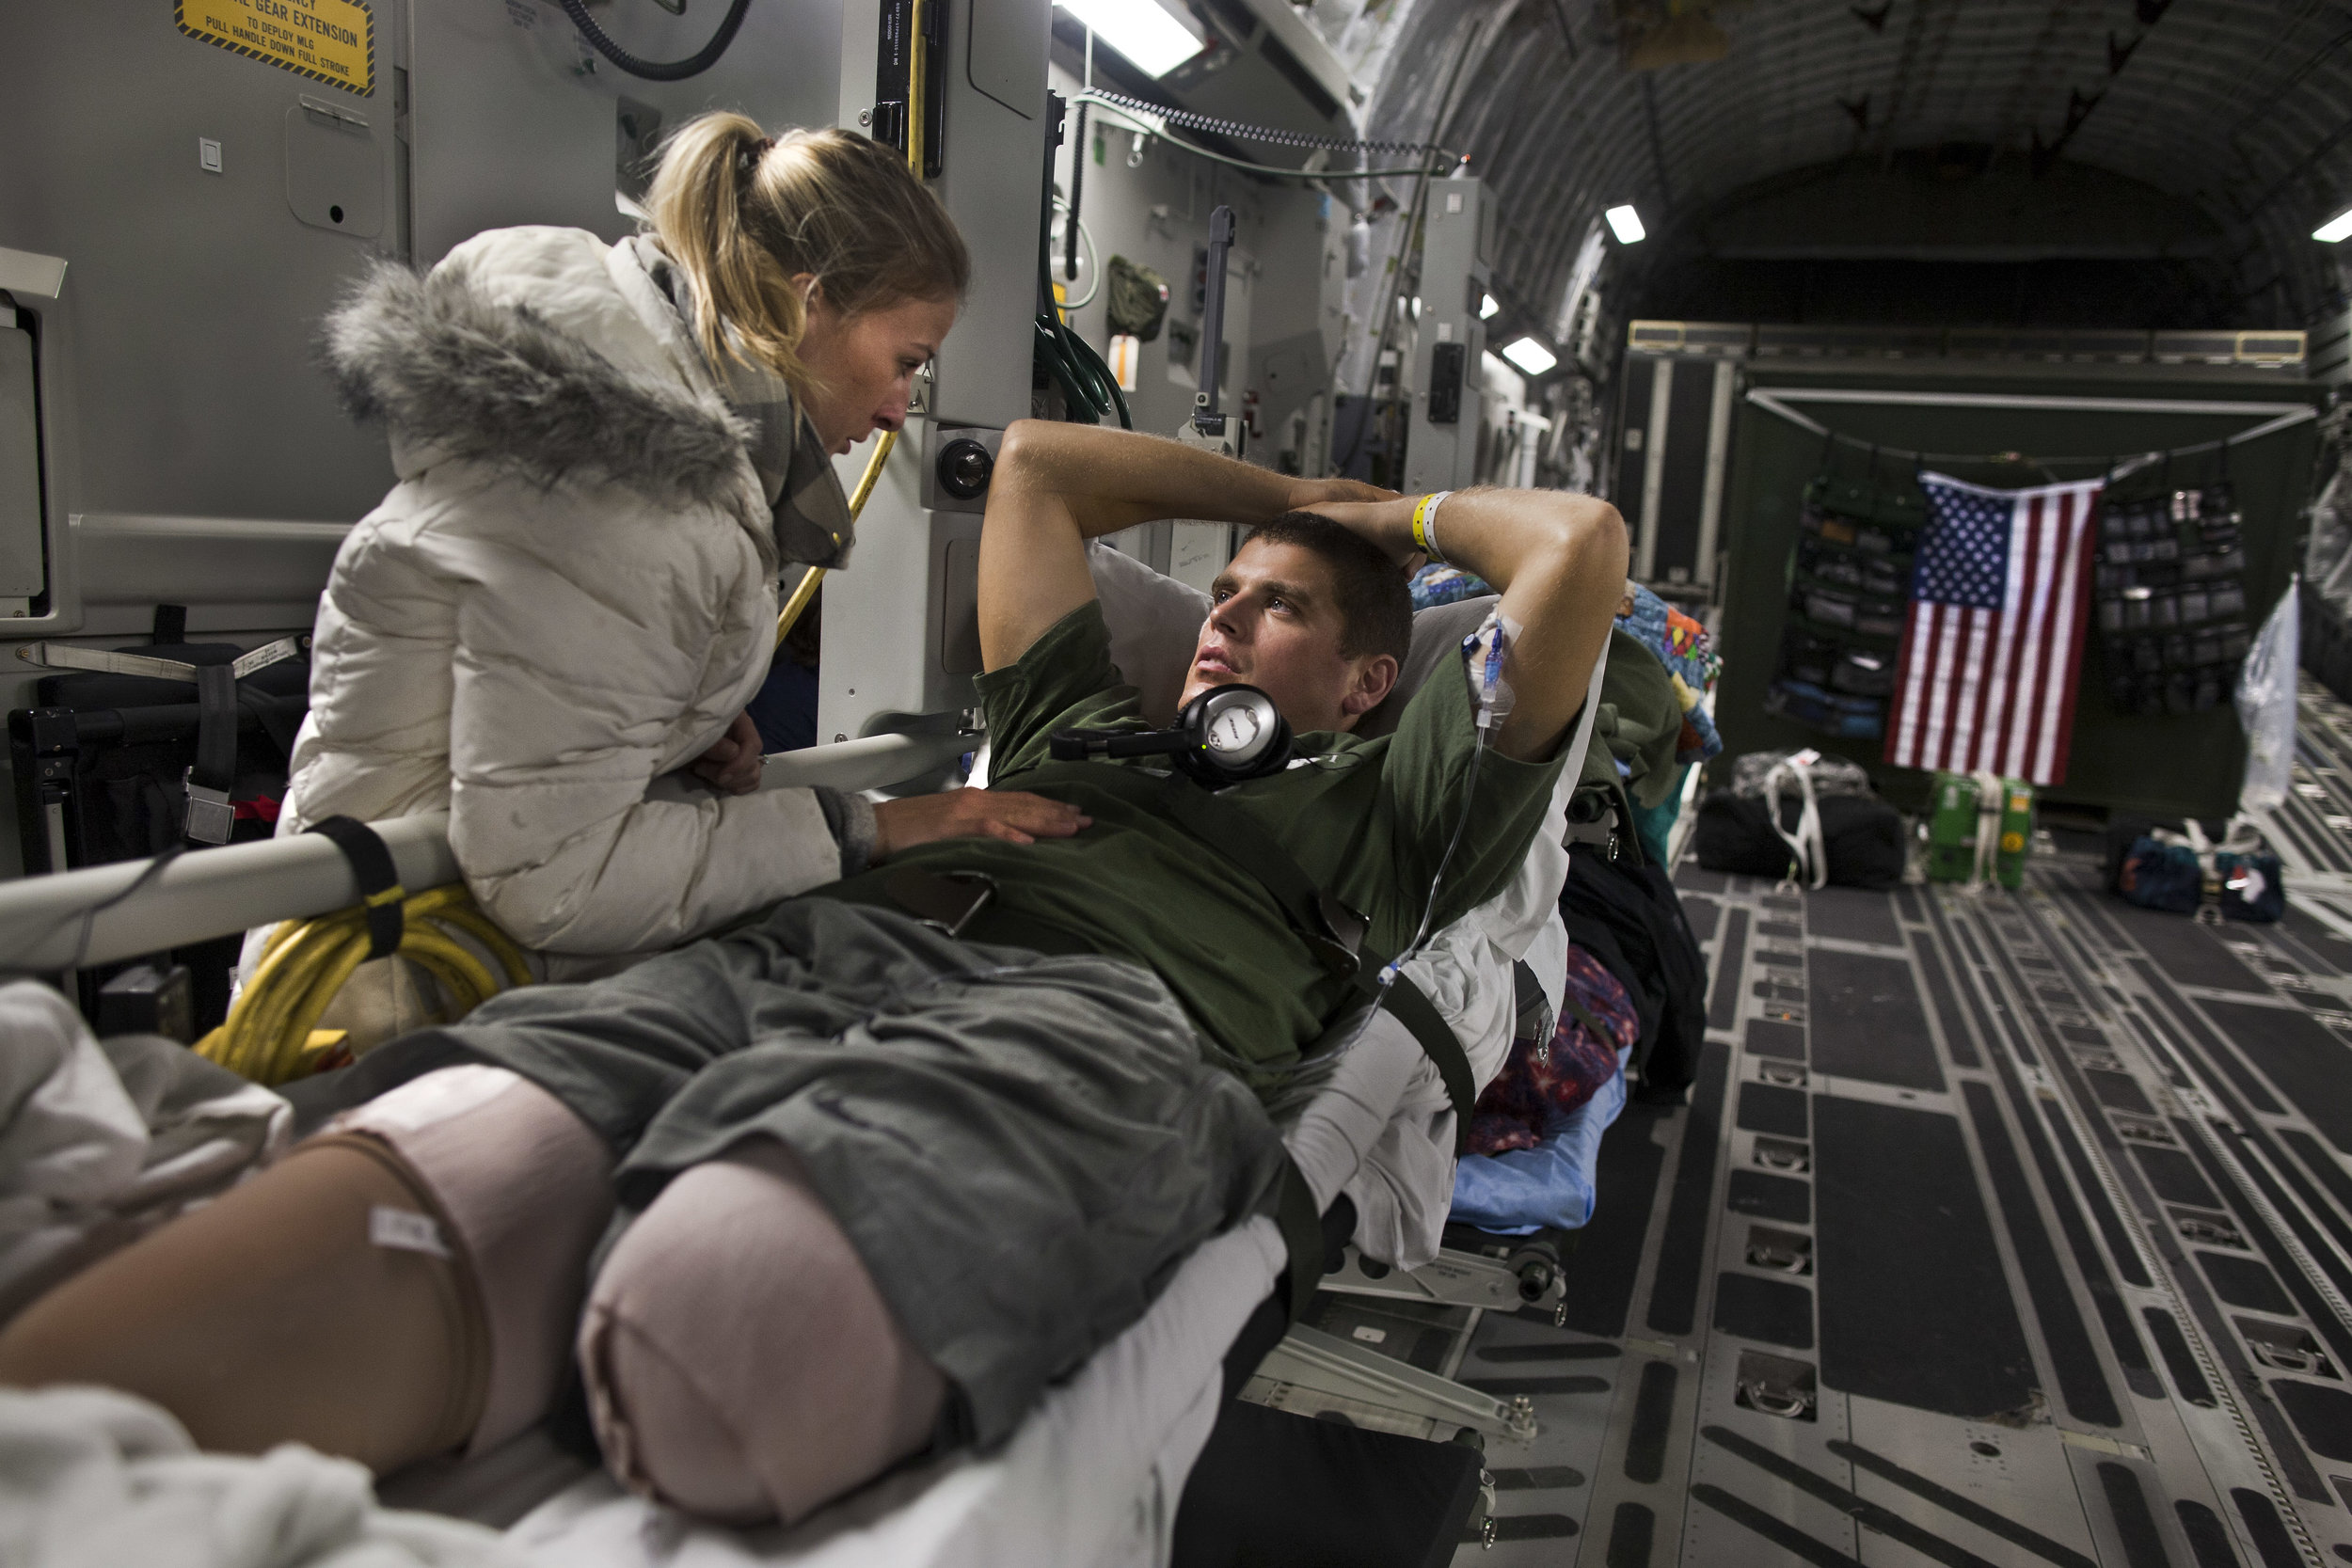 Marine 1st Lieutenant Patrick Glavey, aboard the C-17 Globemaster III. Glavey lost both legs and an index finger after stepping on a IED in Afghanistan. The air evacuation team, provide transport planes to carry injured soldiers from Afghanistan to Germany, and then onto the US. Sometimes the aircraft fly directly from Afghanistan to the US with air-to-air refueling.